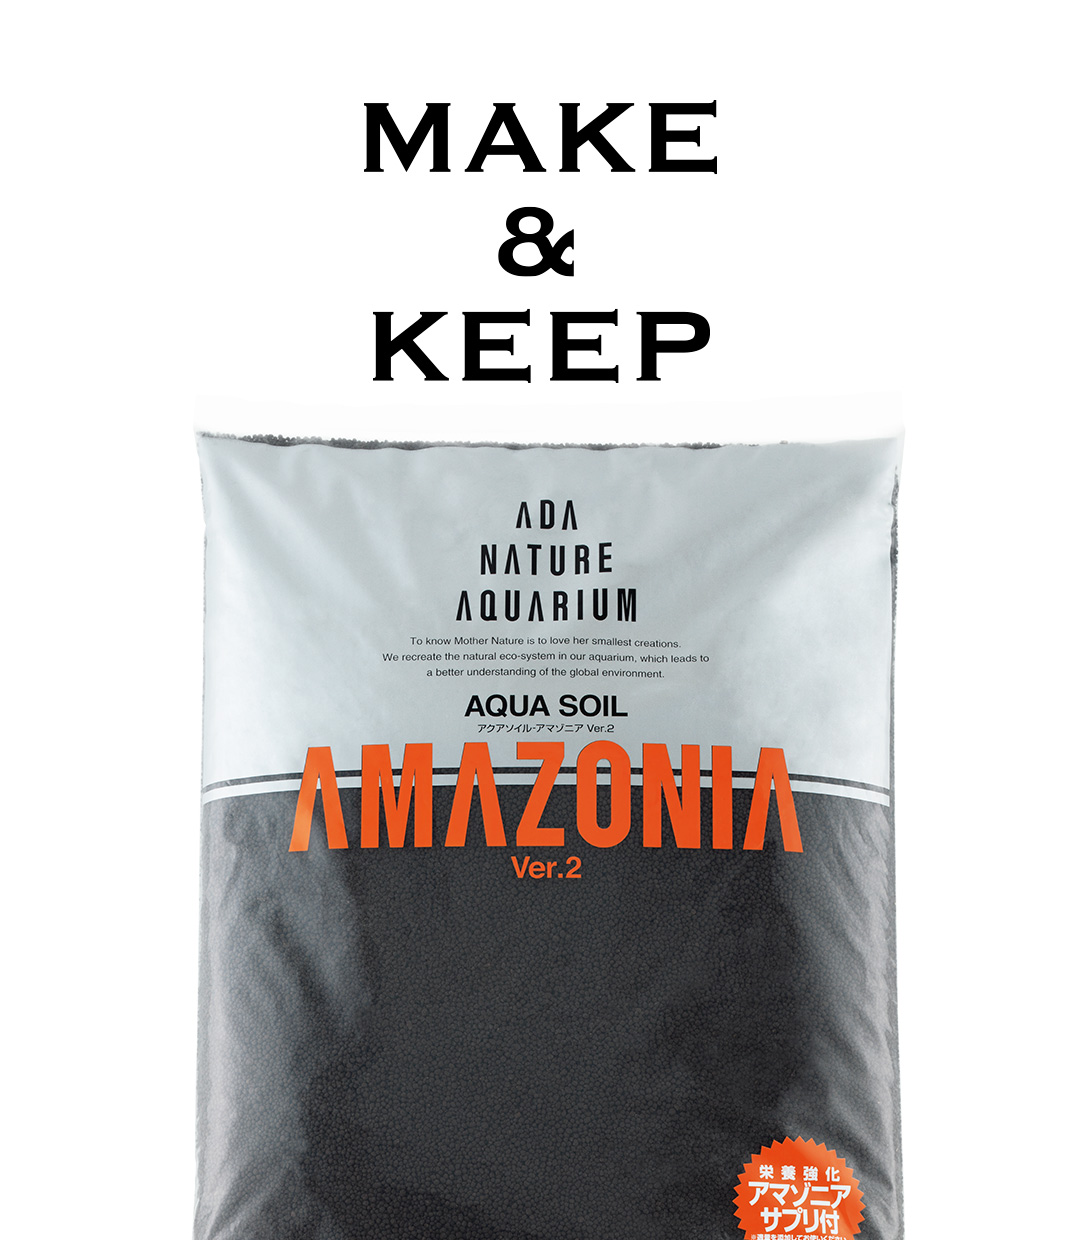 MAKE & KEEP「AQUA SOIL AMAZONIA Ver.2」